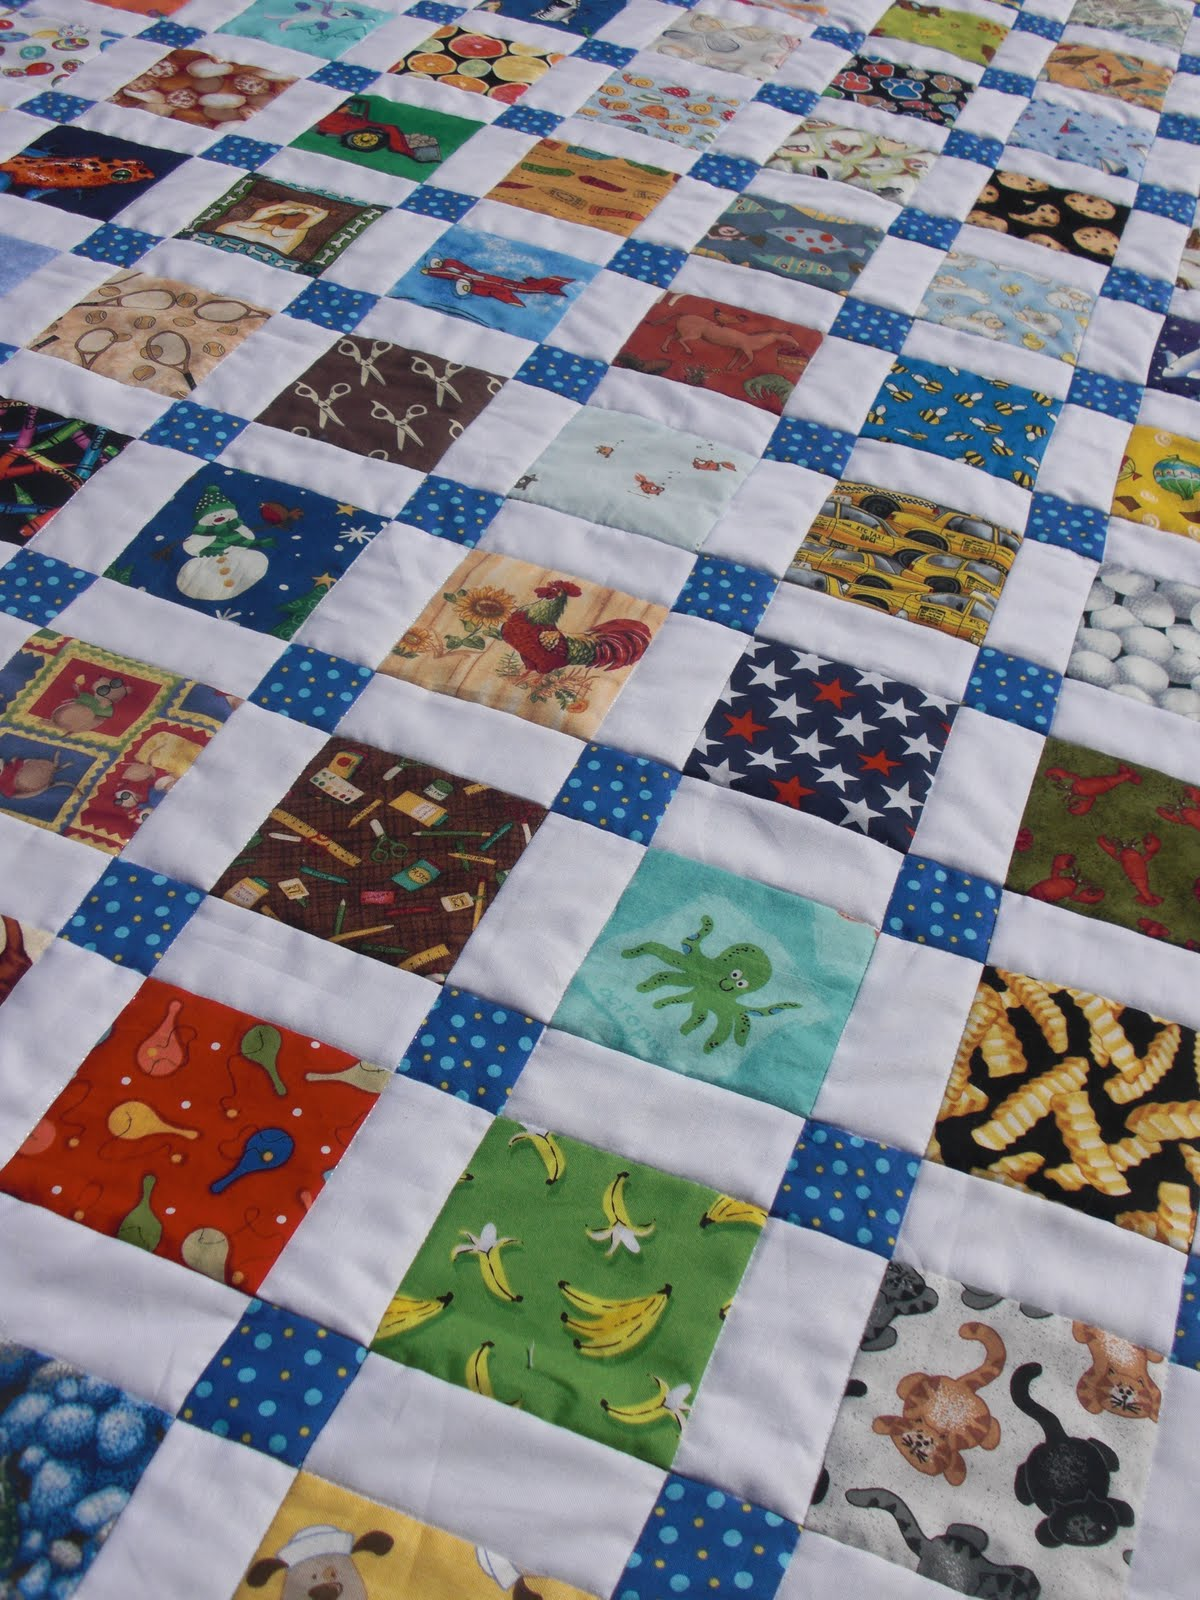 Modern 9 patch quilt block - Obsessively Stitching Disappearing Nine Patch I Spy Version